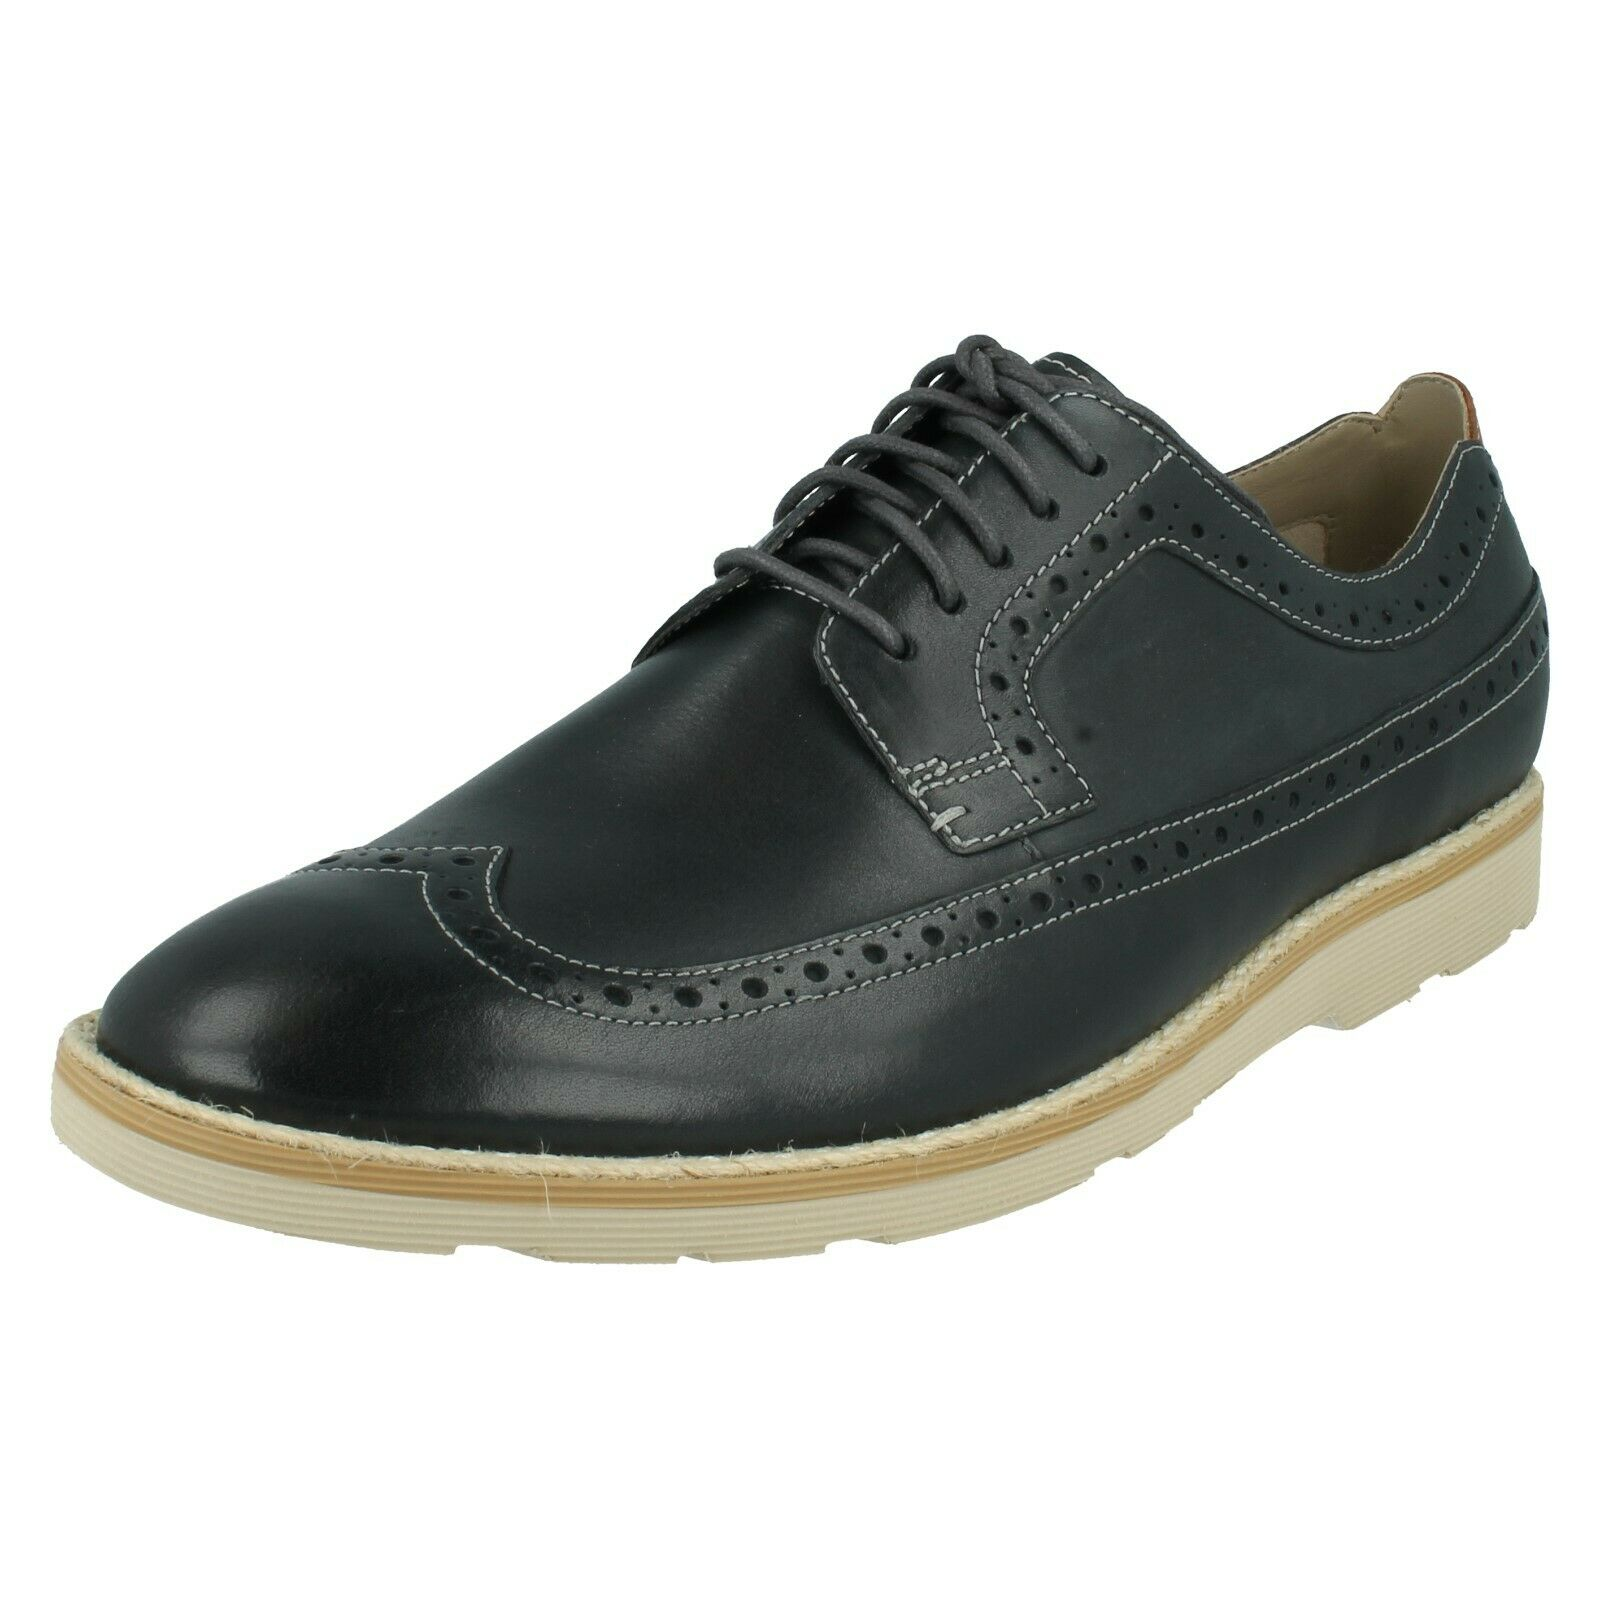 MENS CLARKS LEATHER LIGHTWEIGHT LACE UP CASUAL BROGUES SHOES GAMBESON LIMIT